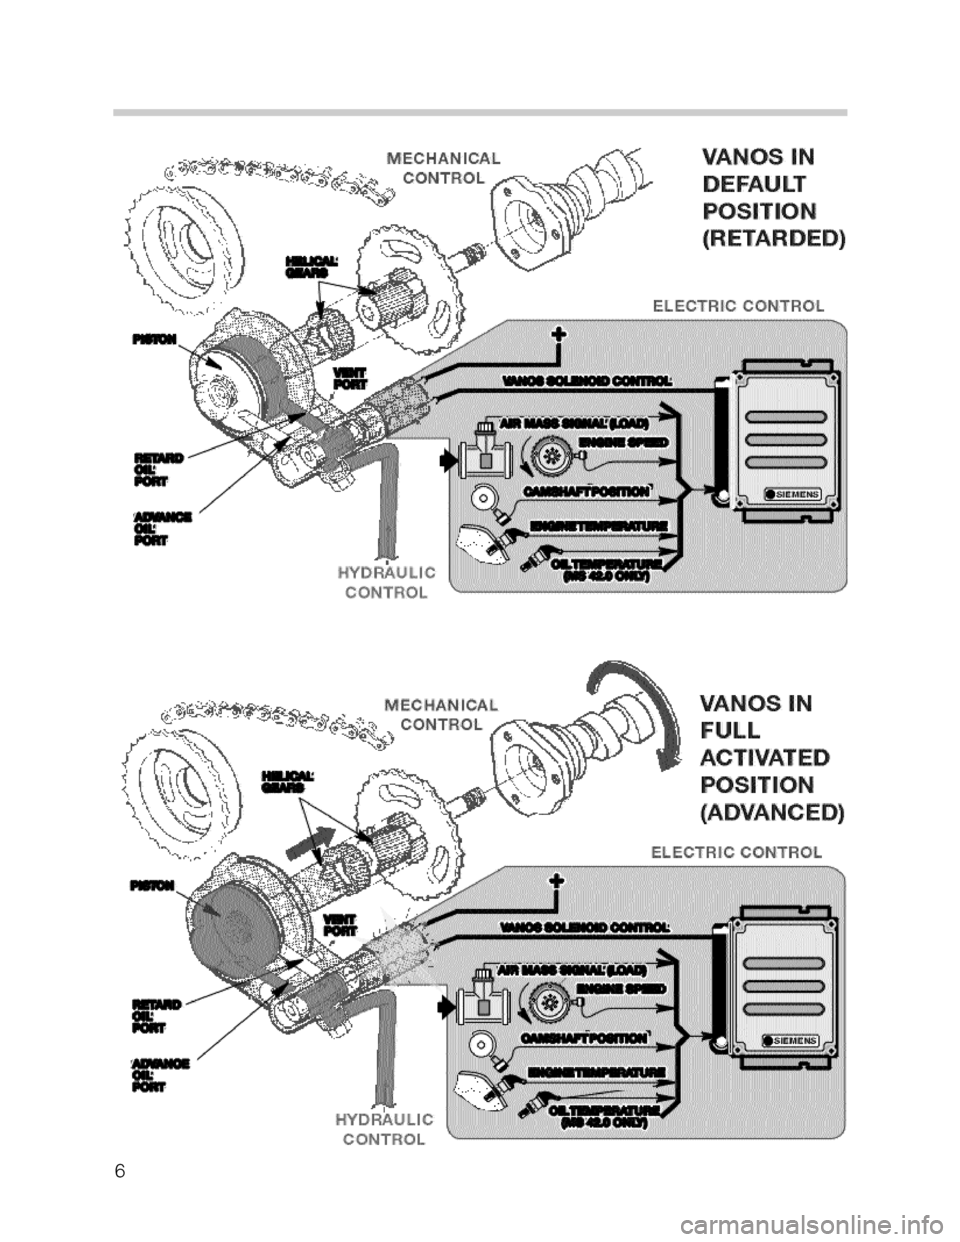 BMW 740i 2000 E38 M62TU Engine Workshop Manual (37 Pages) | Bmw M62 Engine Diagram Free Download |  | Car Manuals Online